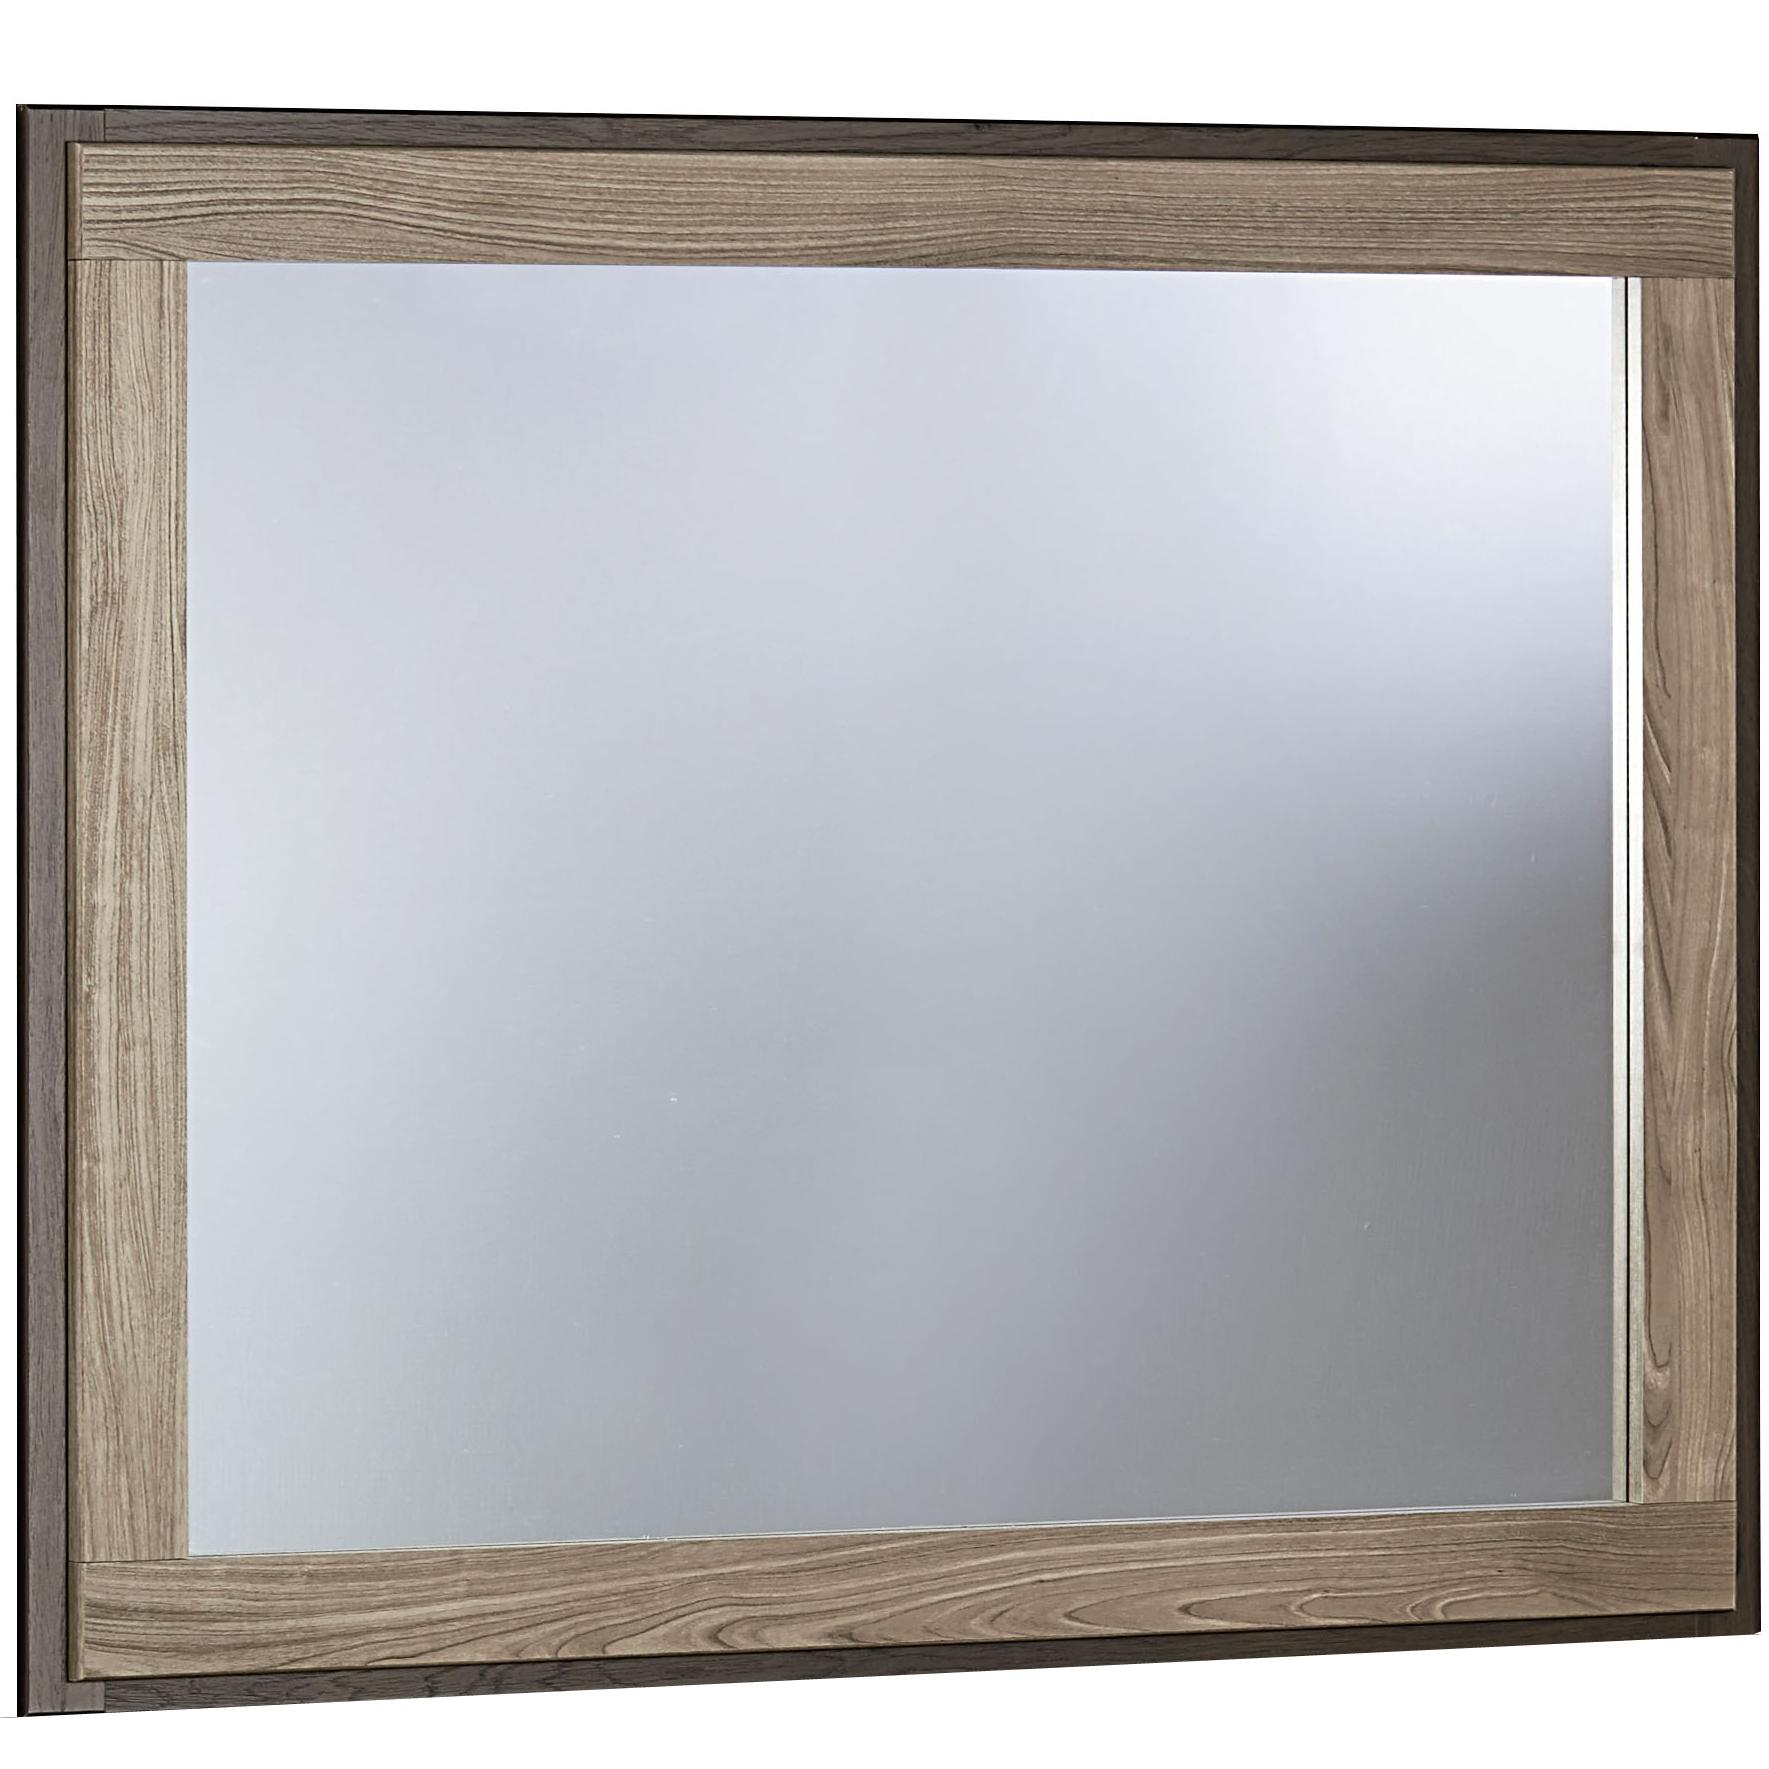 Standard Furniture Freemont Mirror - Item Number: 69768